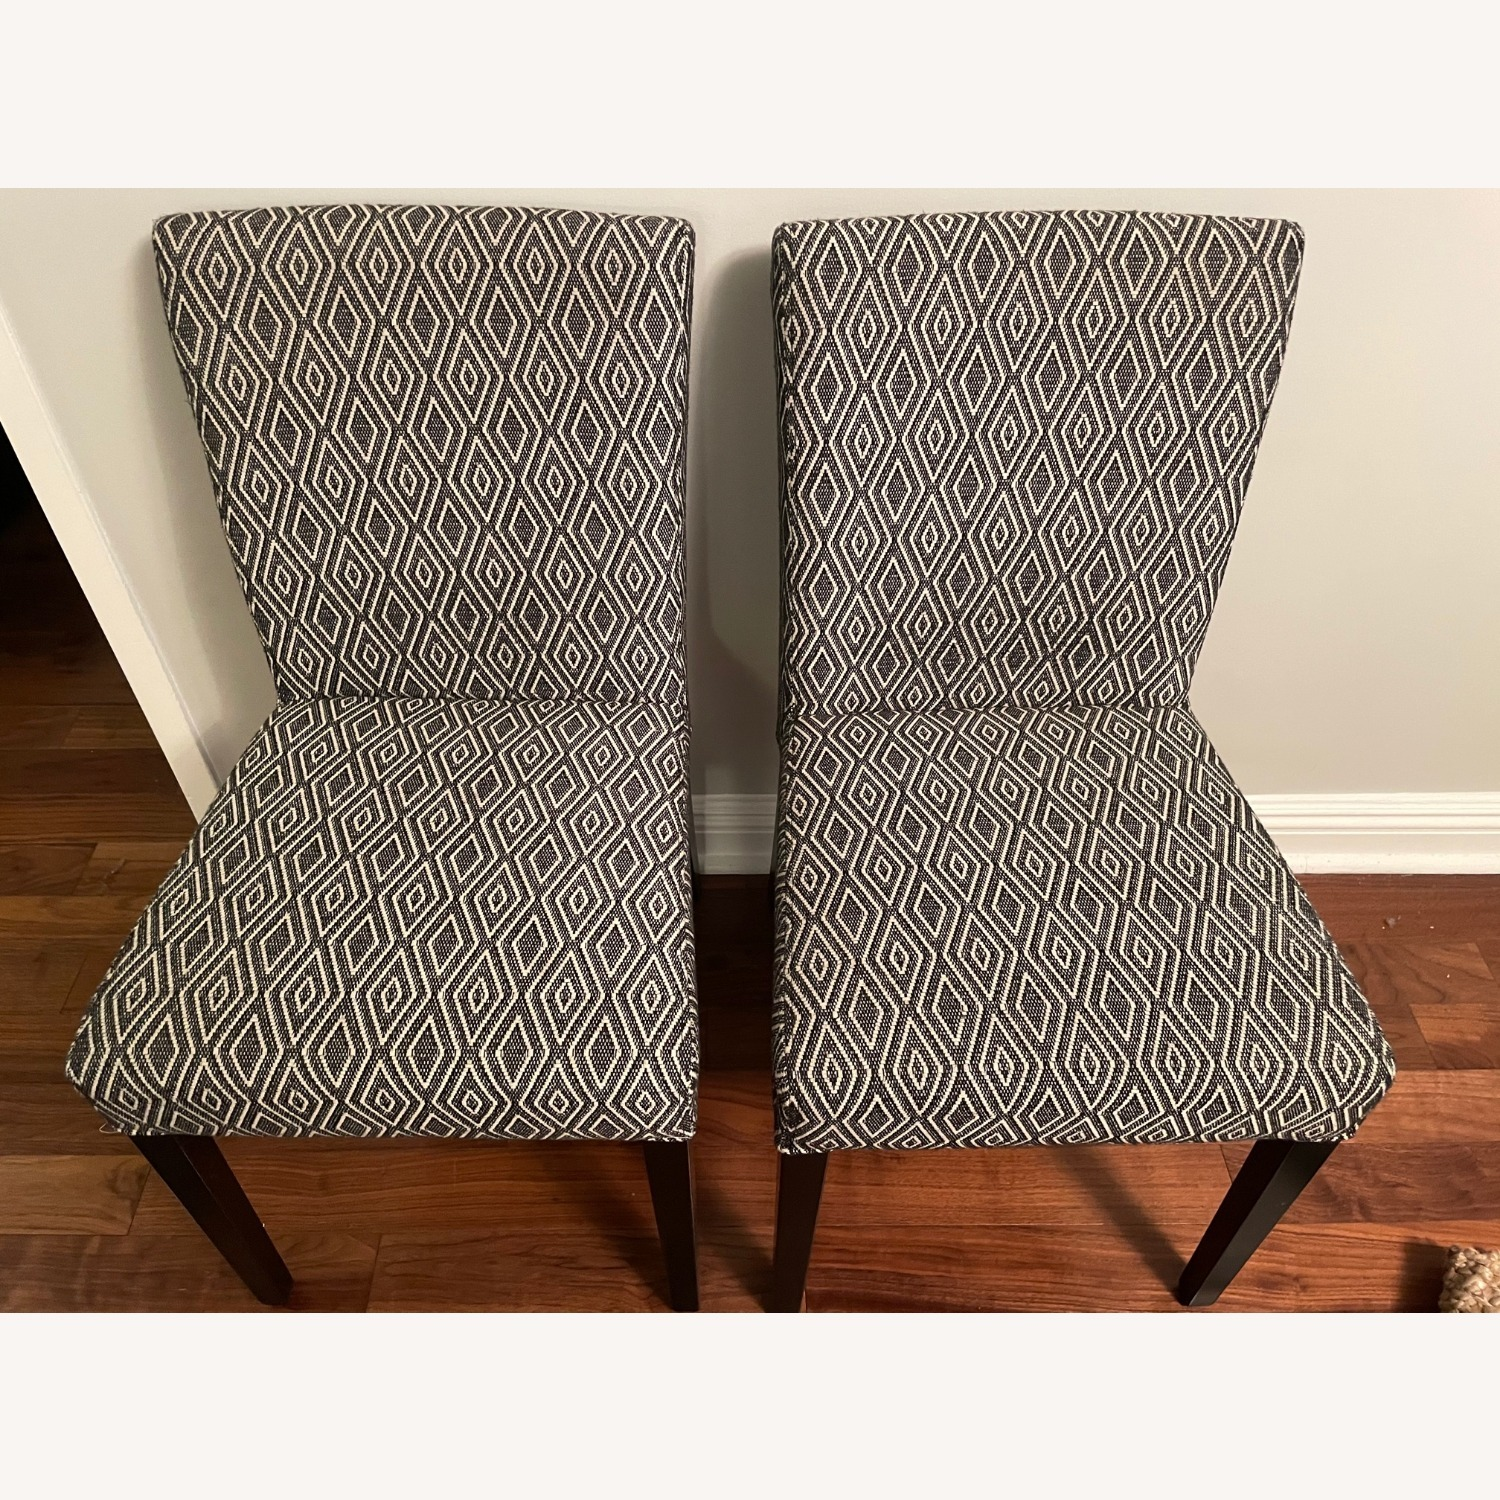 Crate & Barrel Upholstered Dining Chair Set - image-3